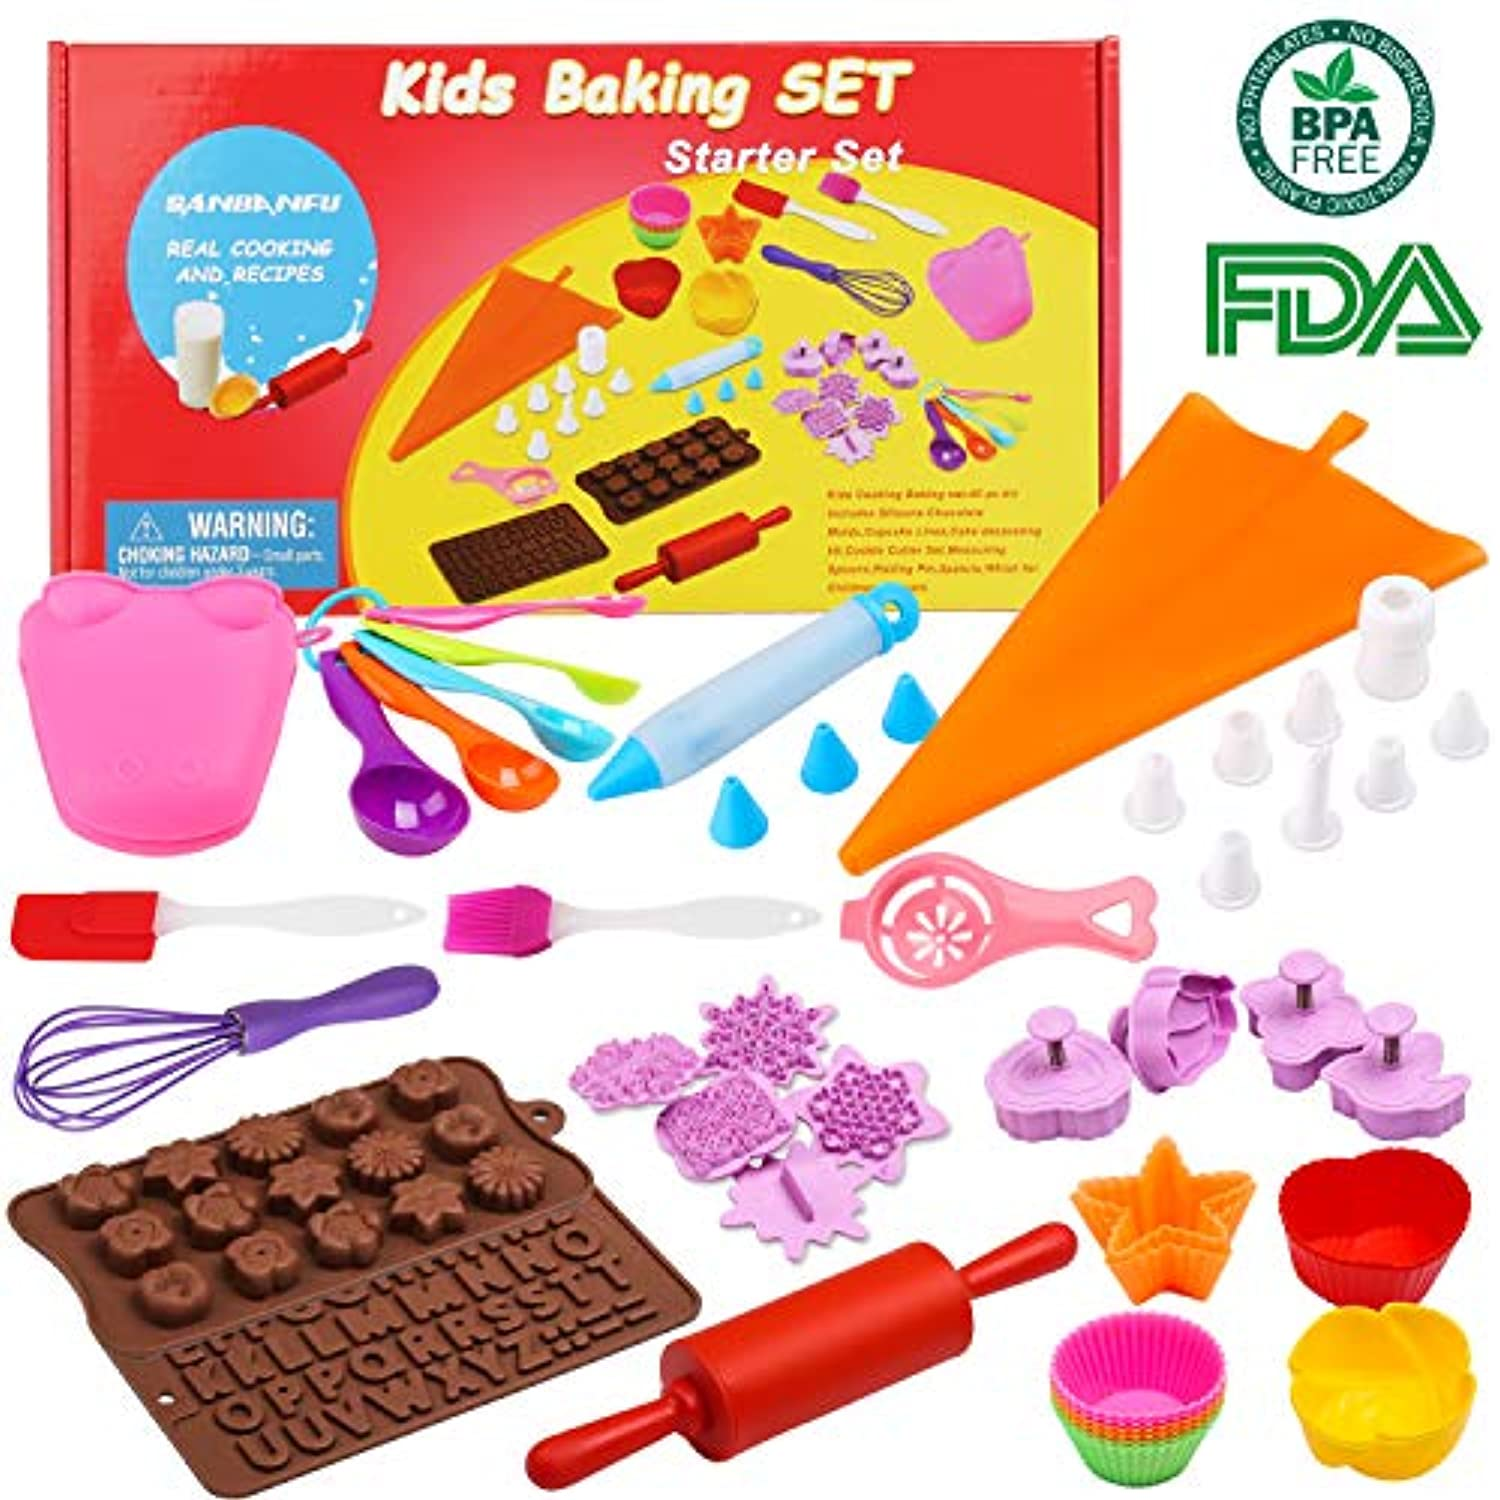 Kids Cooking Baking set Baking supplies Cupcake decorating kit-40 pcs include Silicone Chocolate Moulds,Cupcake cups,Cake decorating kit,Cookie Cutters,Measuring Spoons,Rolling Pin,Spatula,Whisk